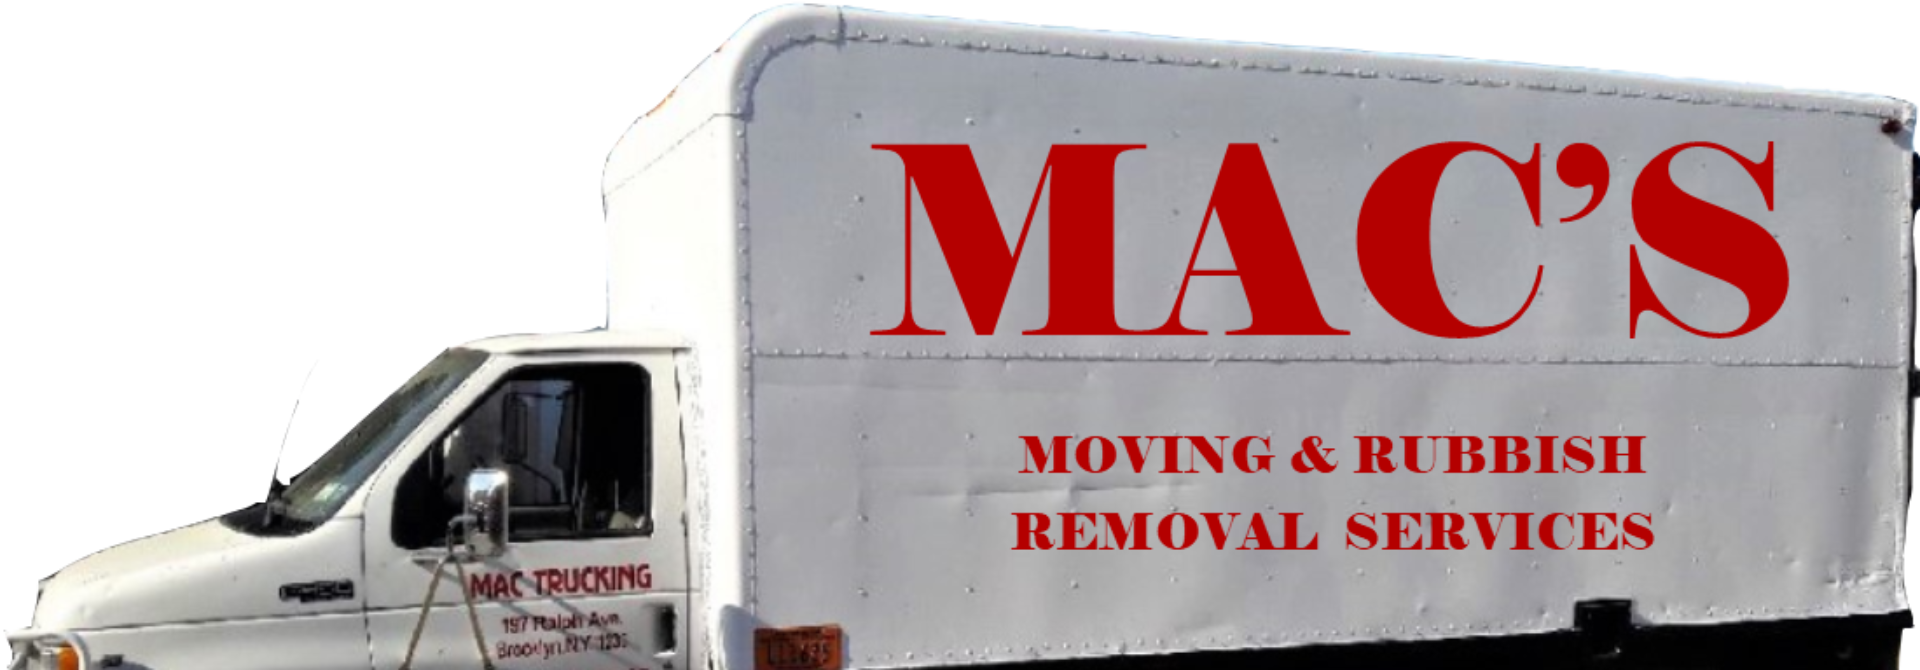 Mac's Moving /Rubbish Removal Services